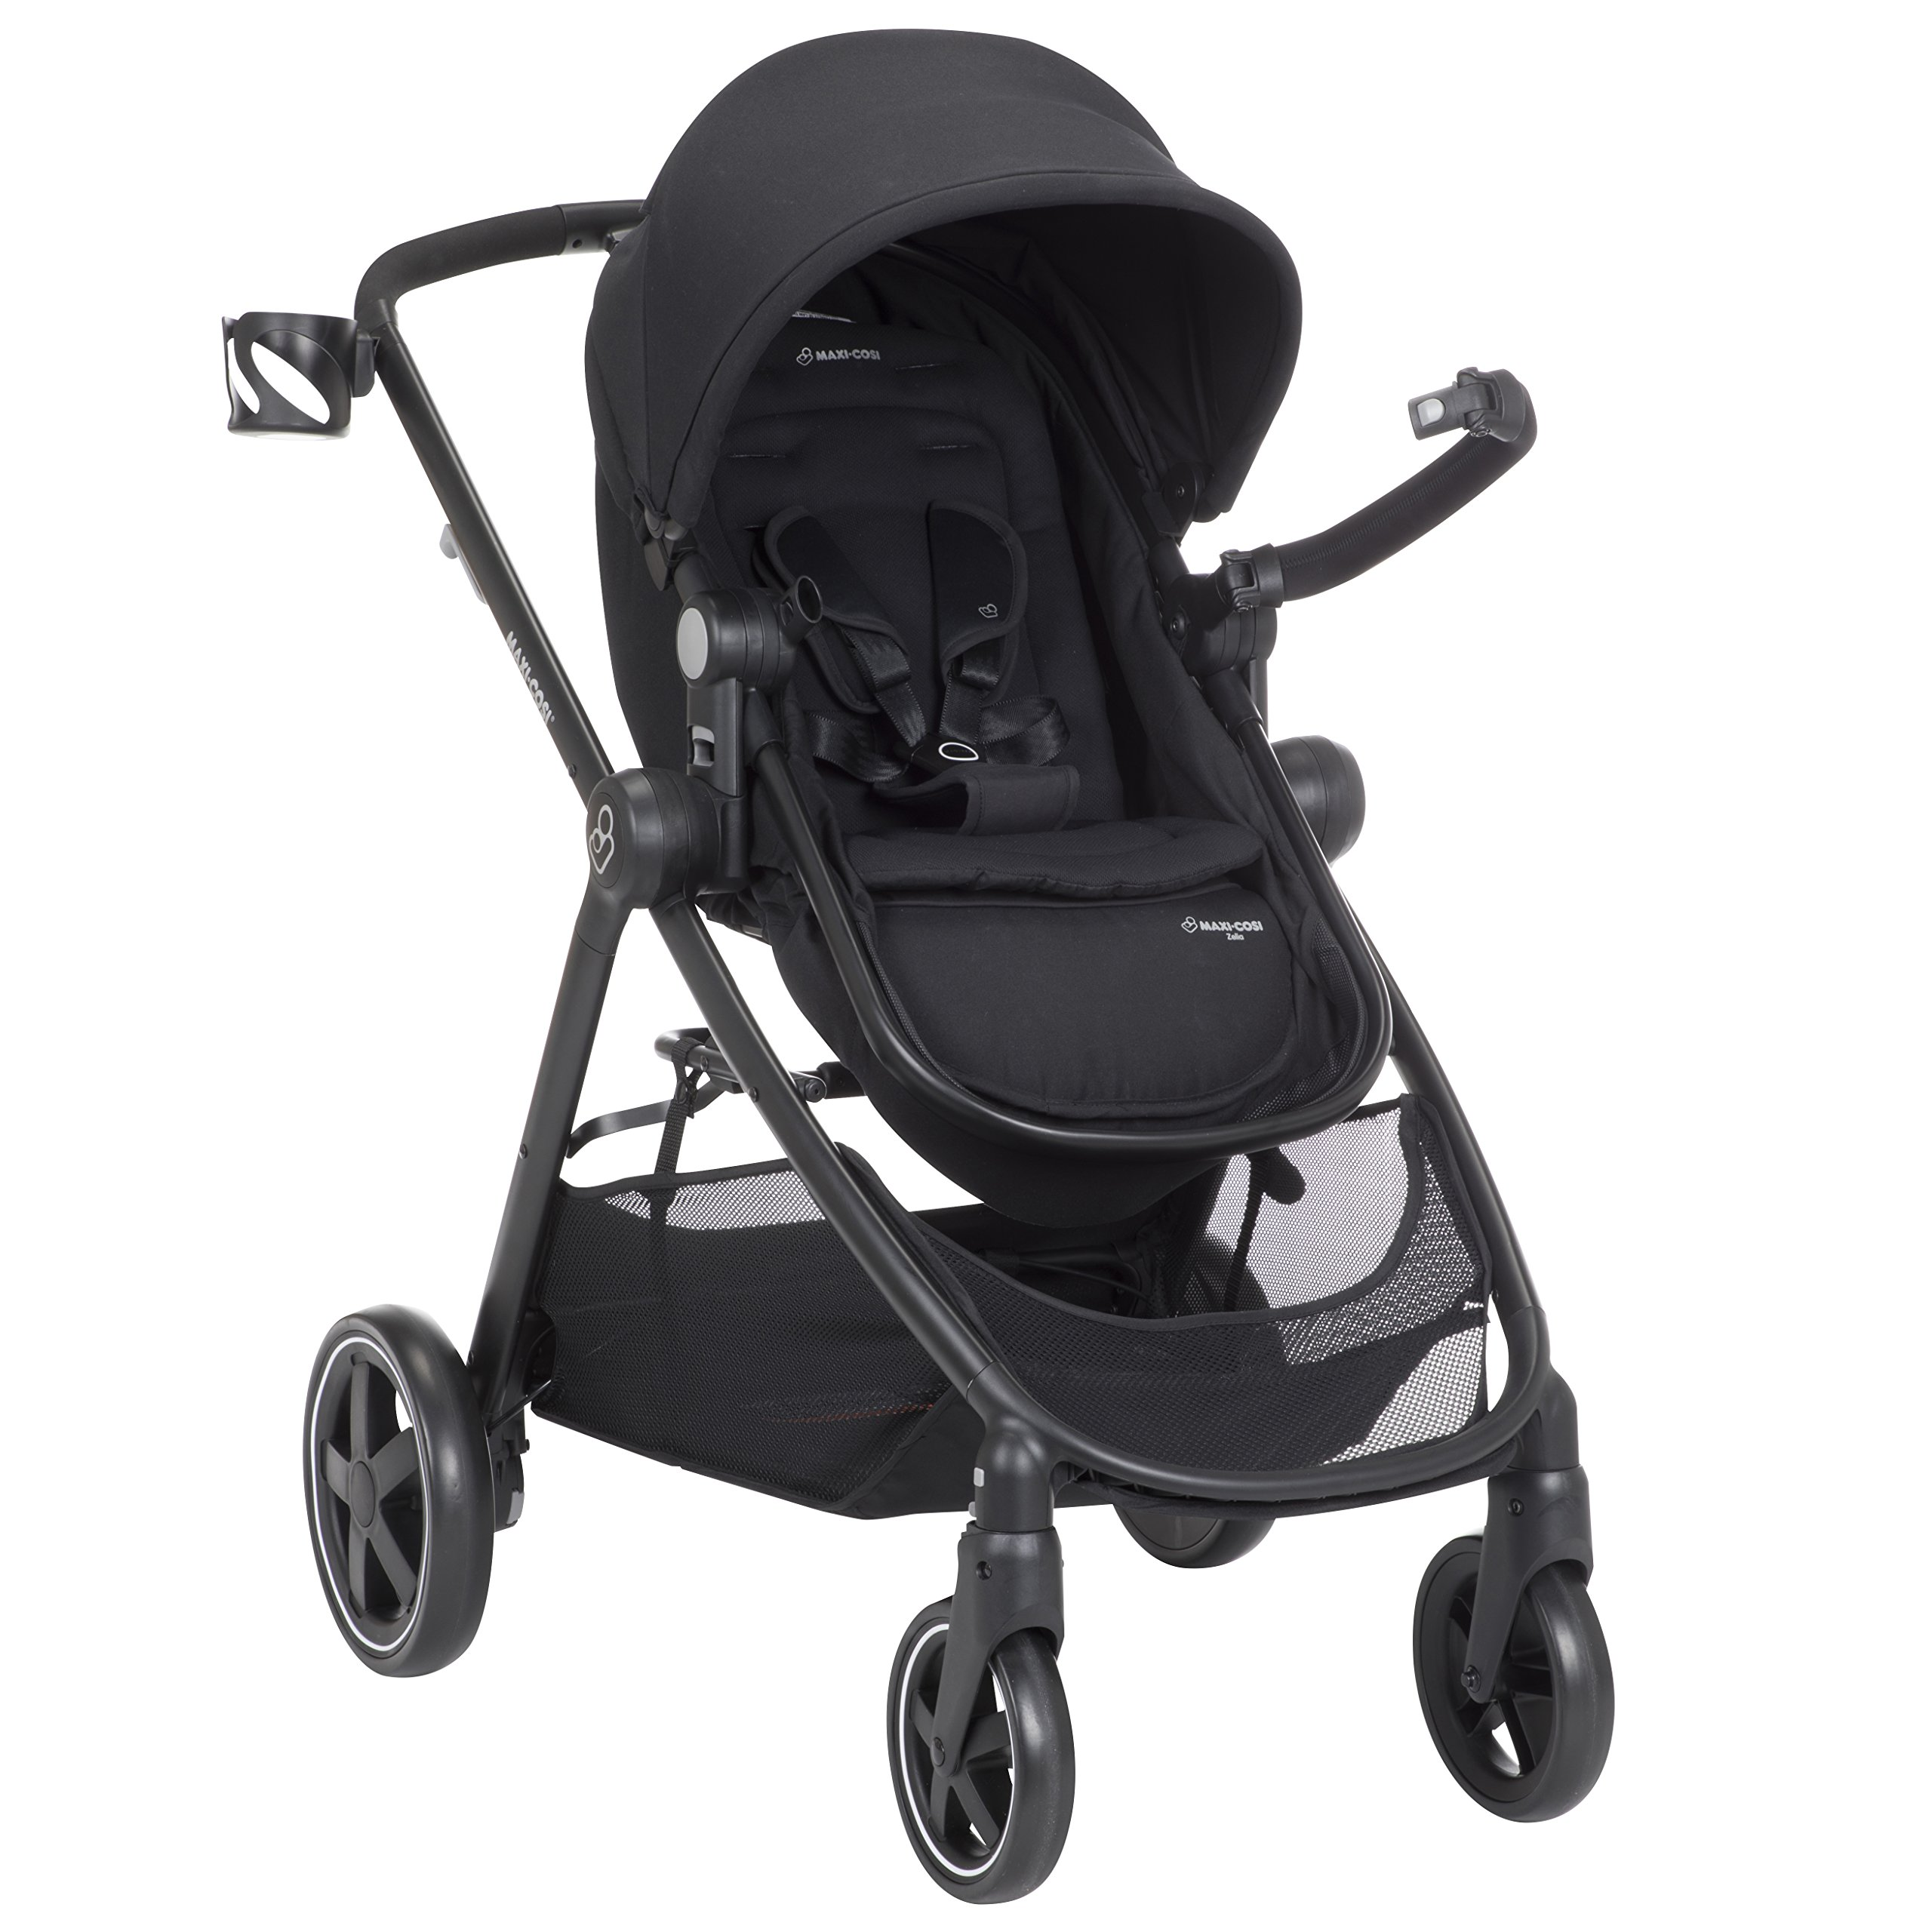 Maxi-Cosi Zelia 5-in-1 Modular Travel System Stroller and Mico 30 Infant Car Seat Set (Night Black) by Maxi-Cosi (Image #9)